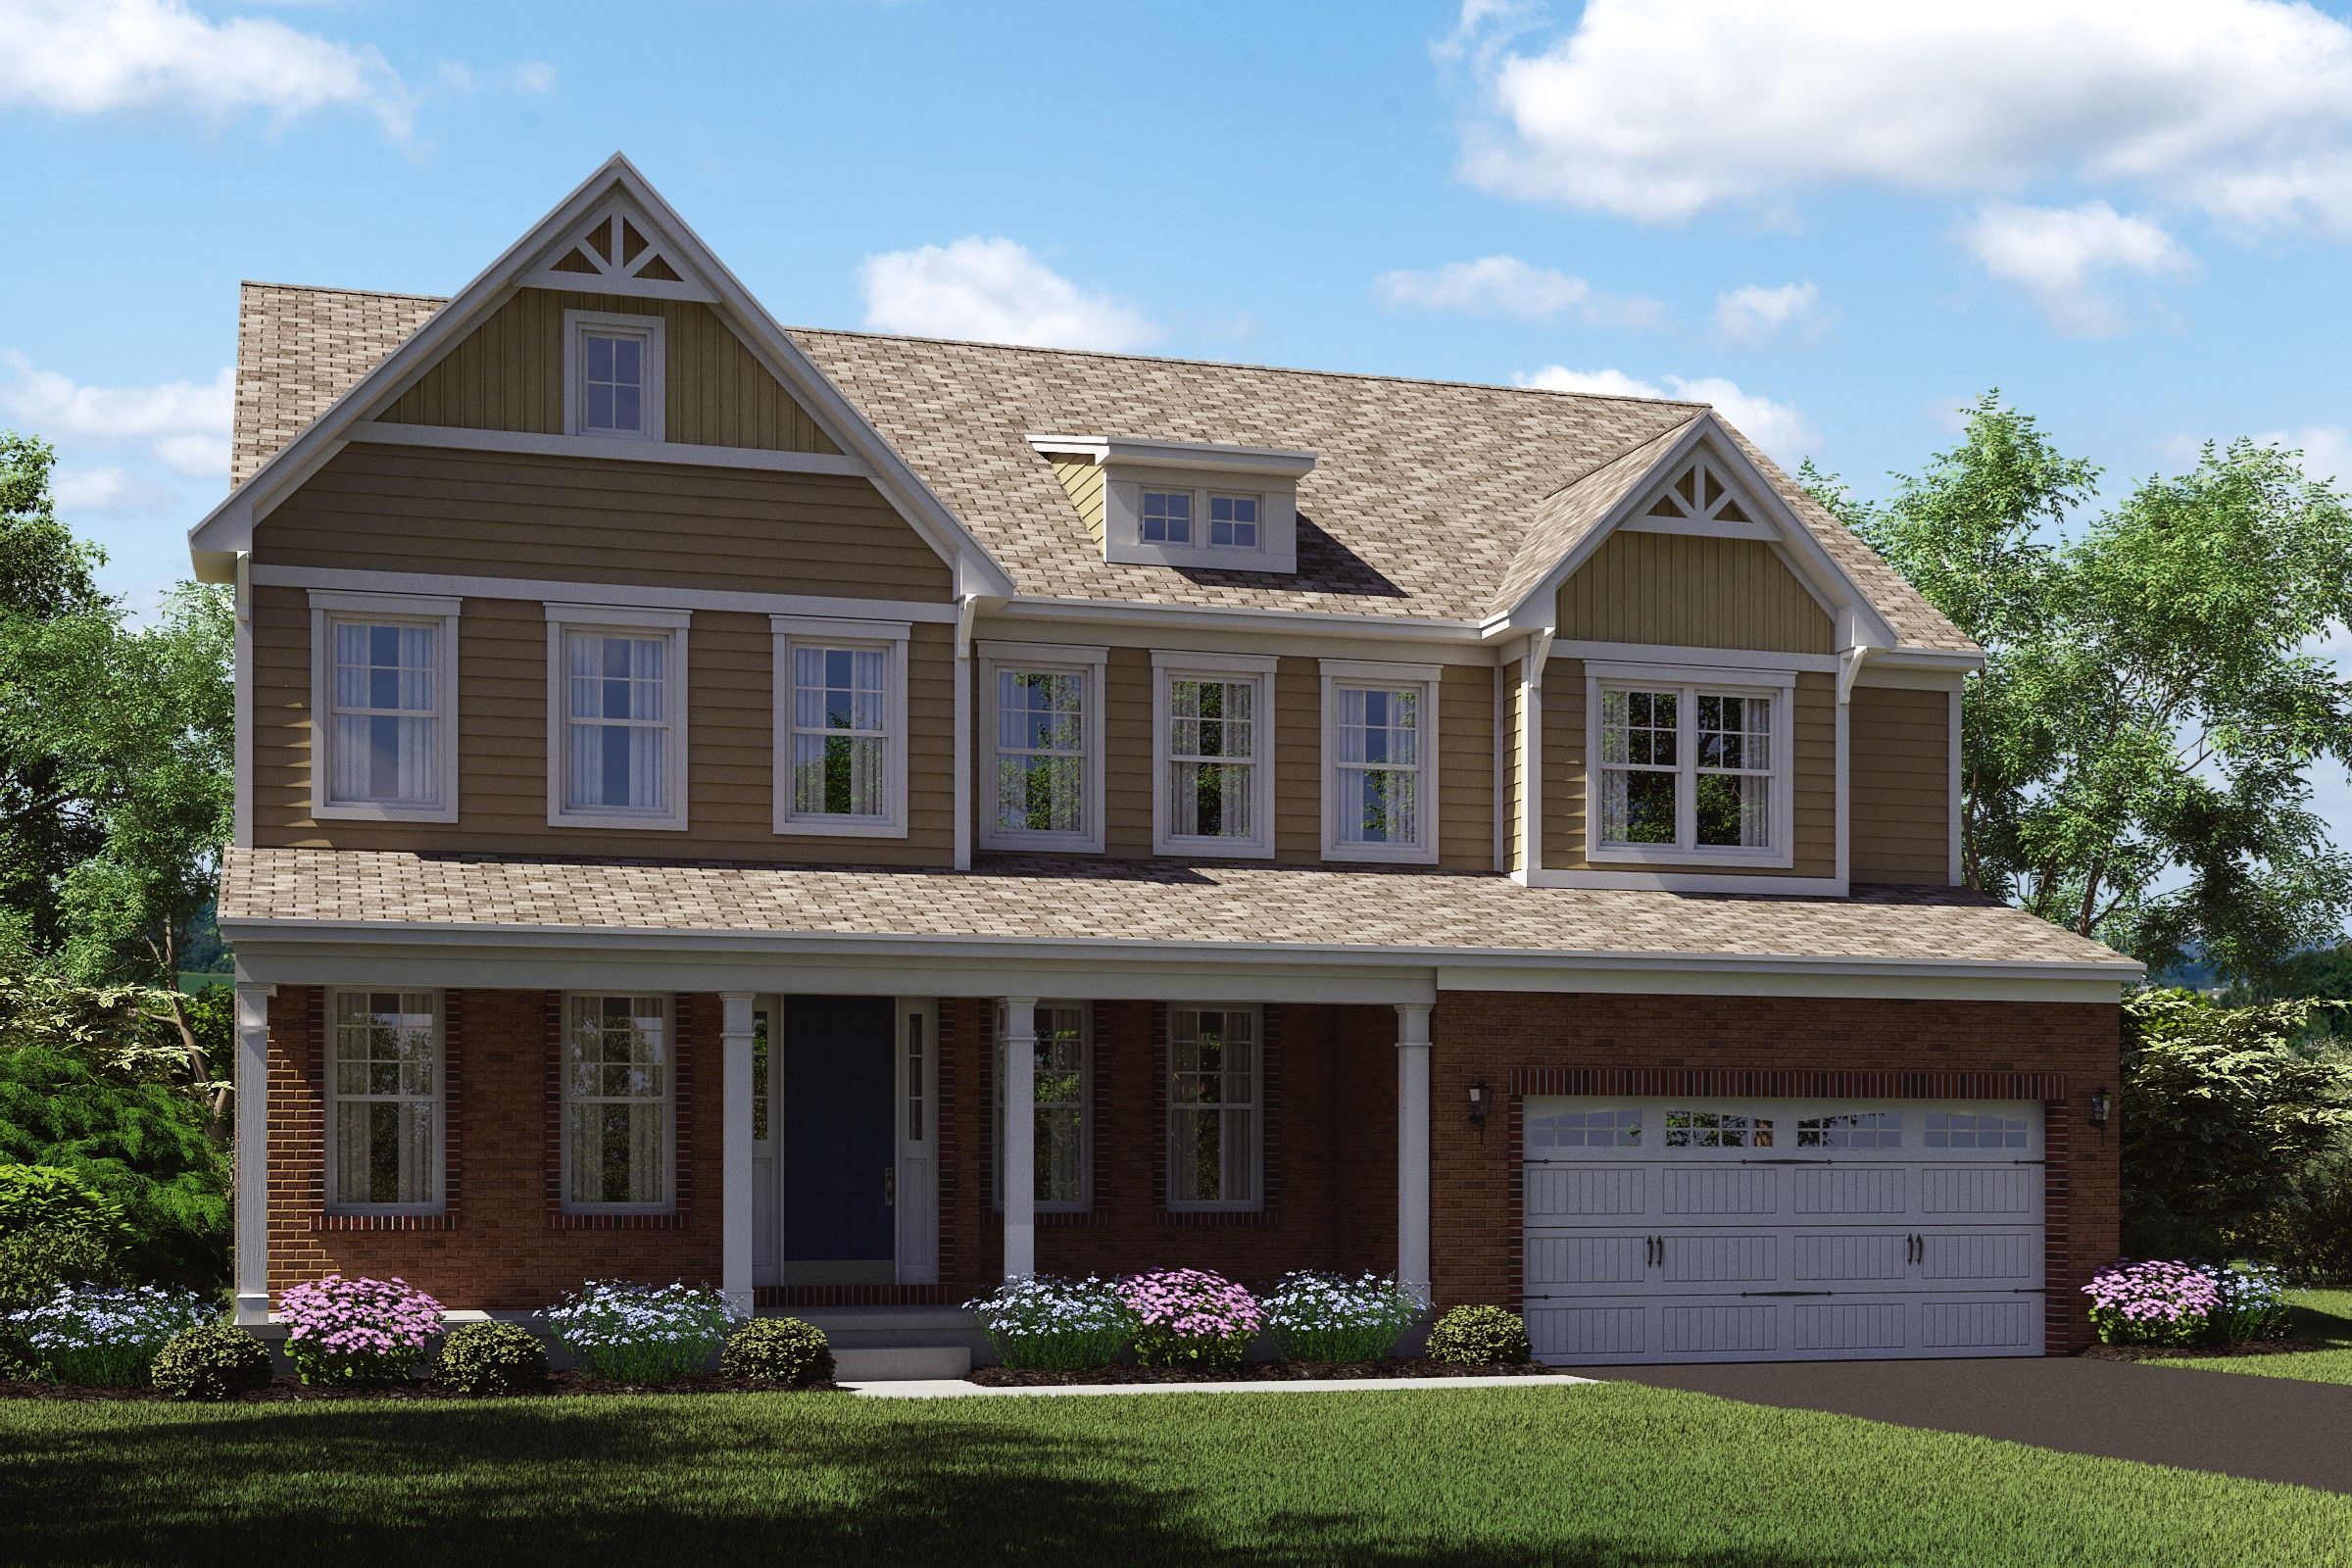 1890 Crownsville Road, Annapolis, MD Homes & Land - Real Estate